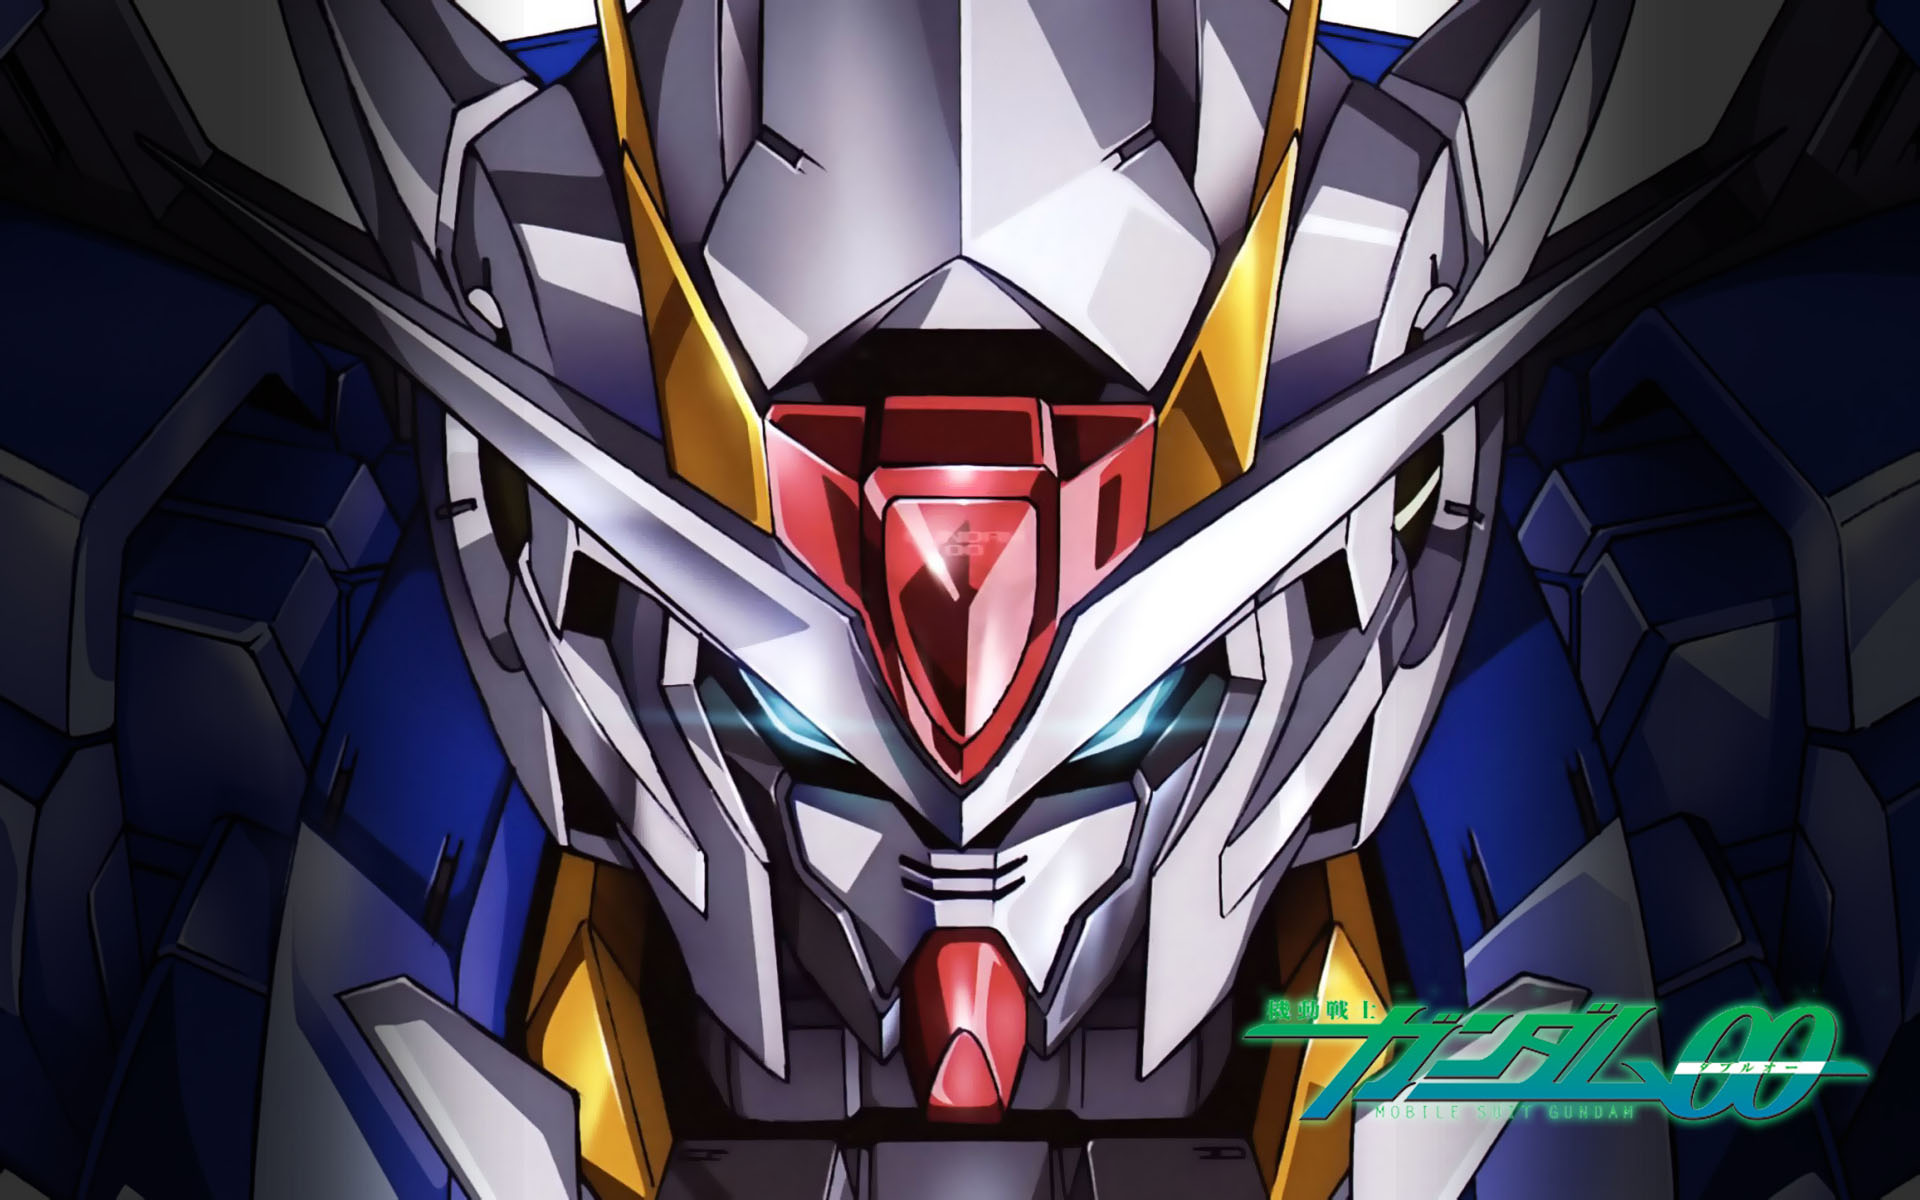 73 Gundam 00 Wallpaper Hd On Wallpapersafari